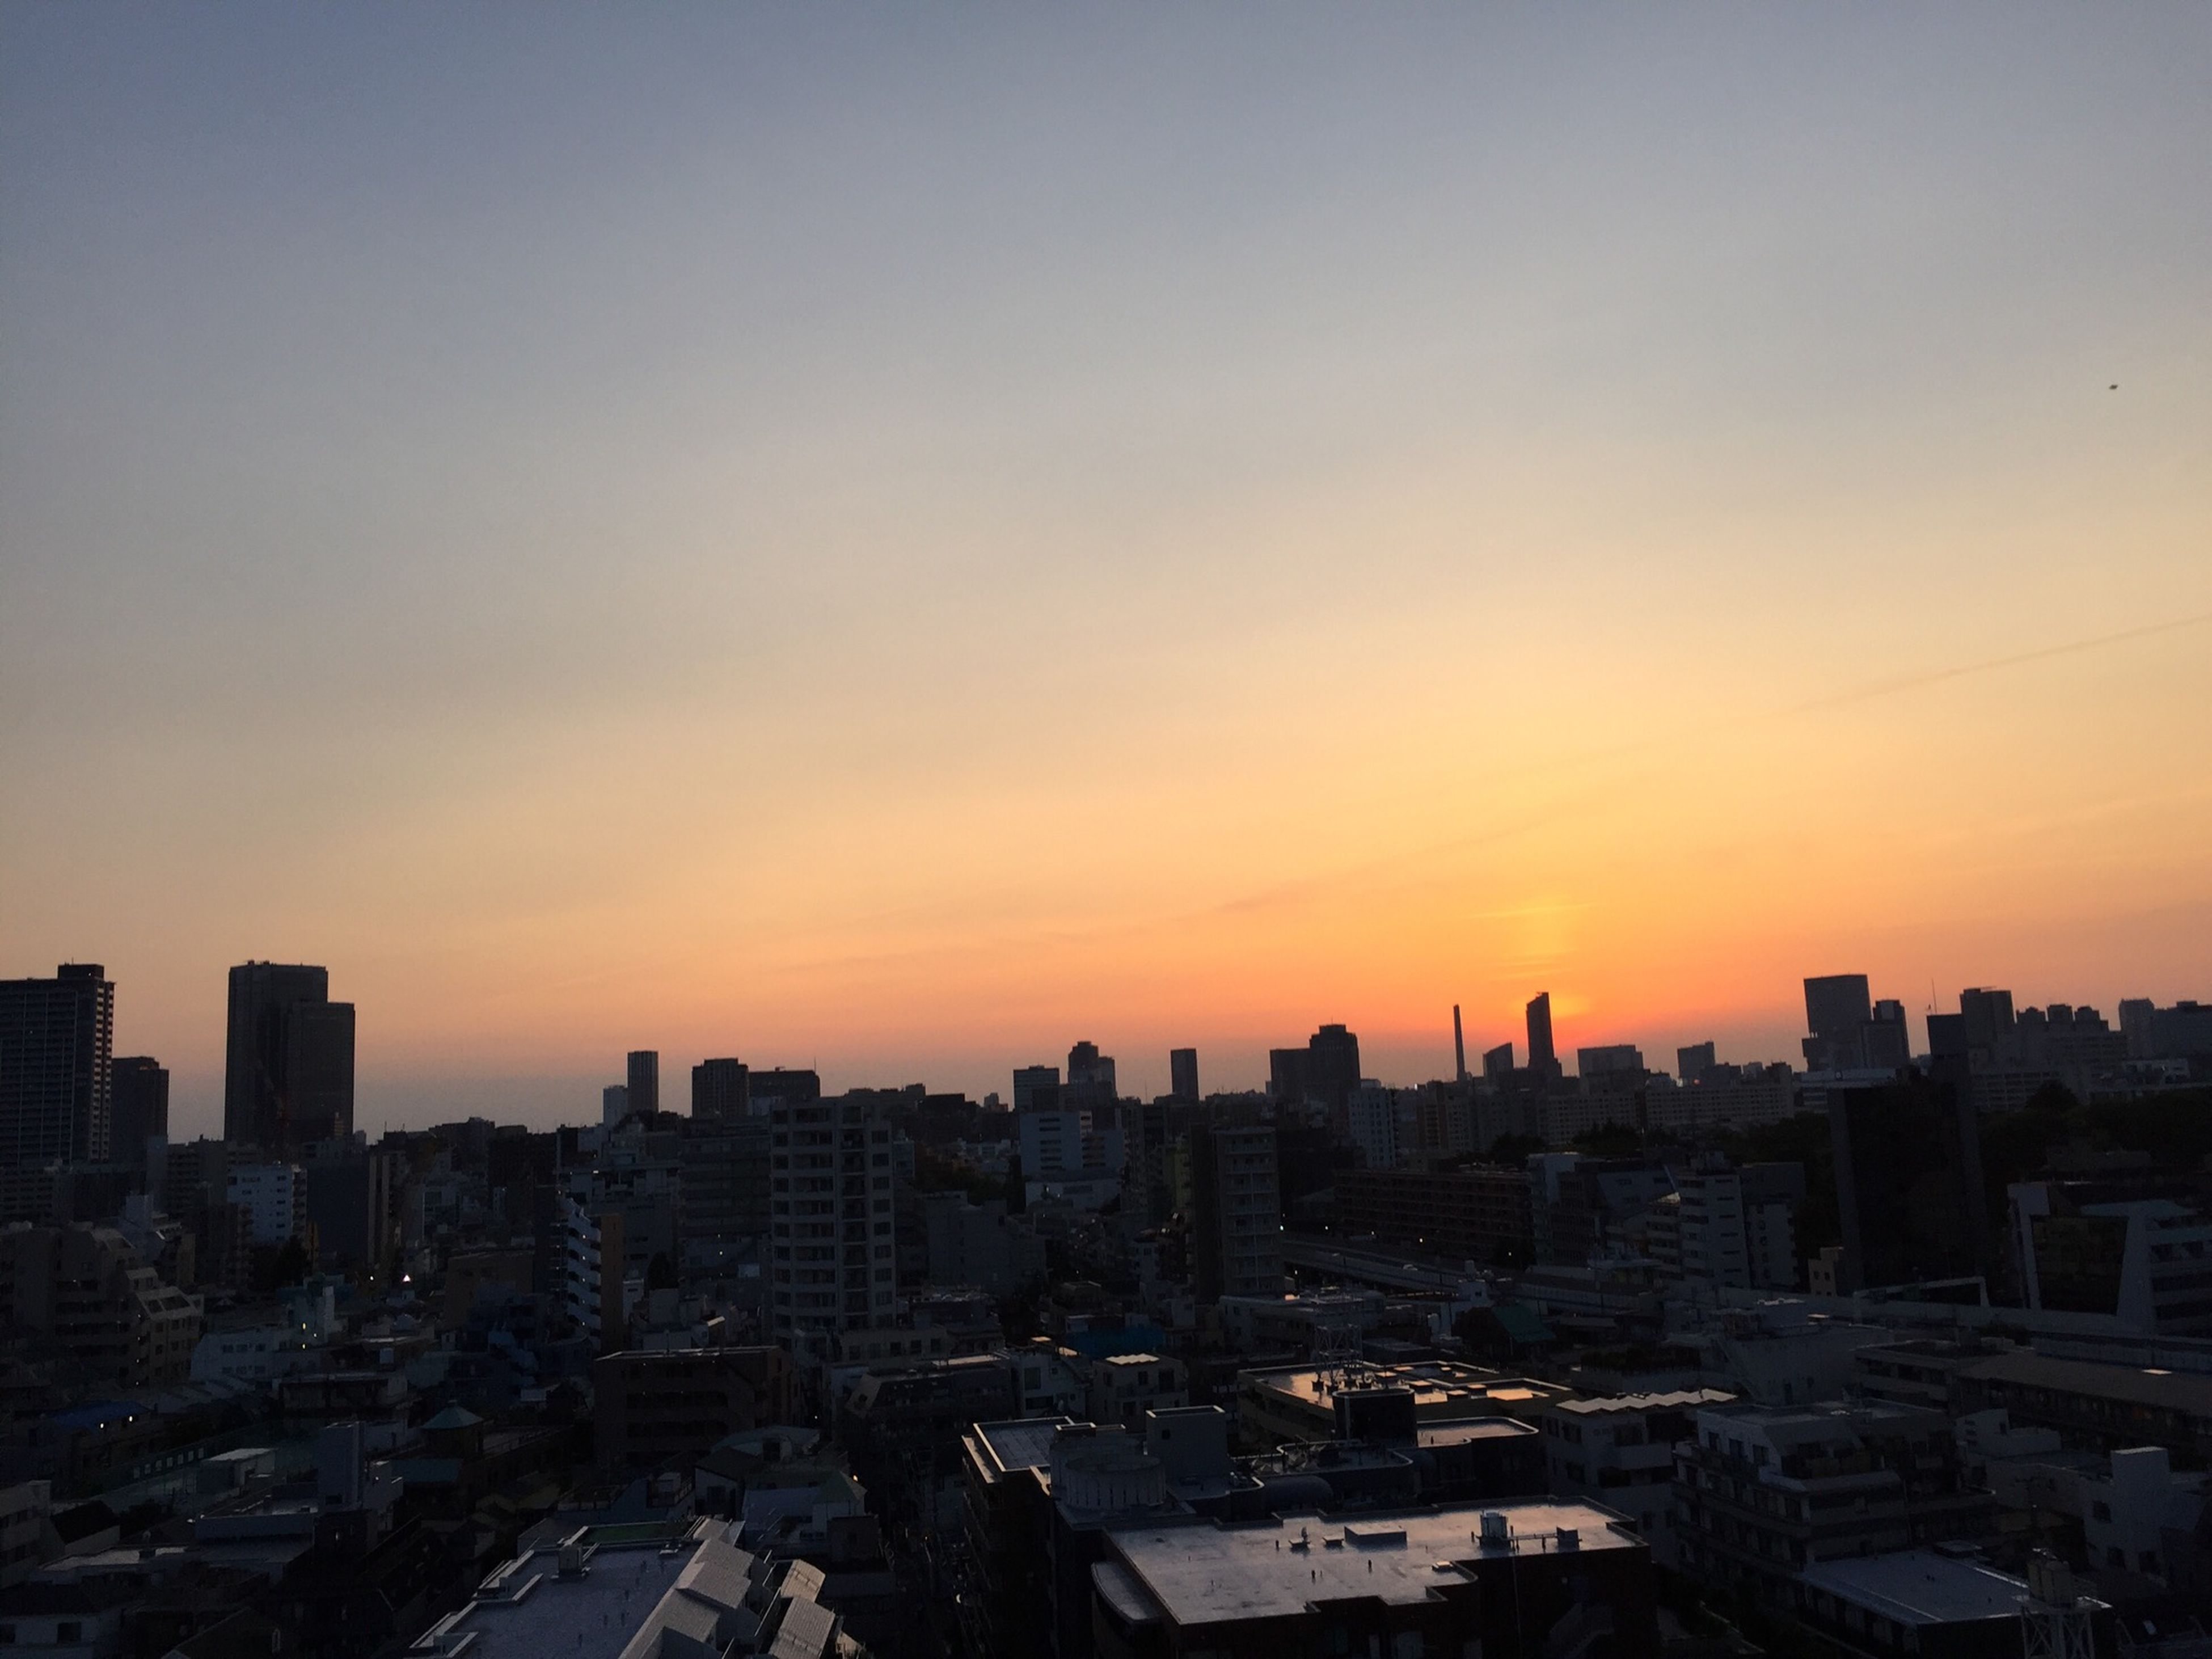 city, building exterior, cityscape, architecture, sunset, built structure, high angle view, orange color, copy space, skyscraper, crowded, residential district, city life, clear sky, residential building, tower, tall - high, sky, residential structure, urban skyline